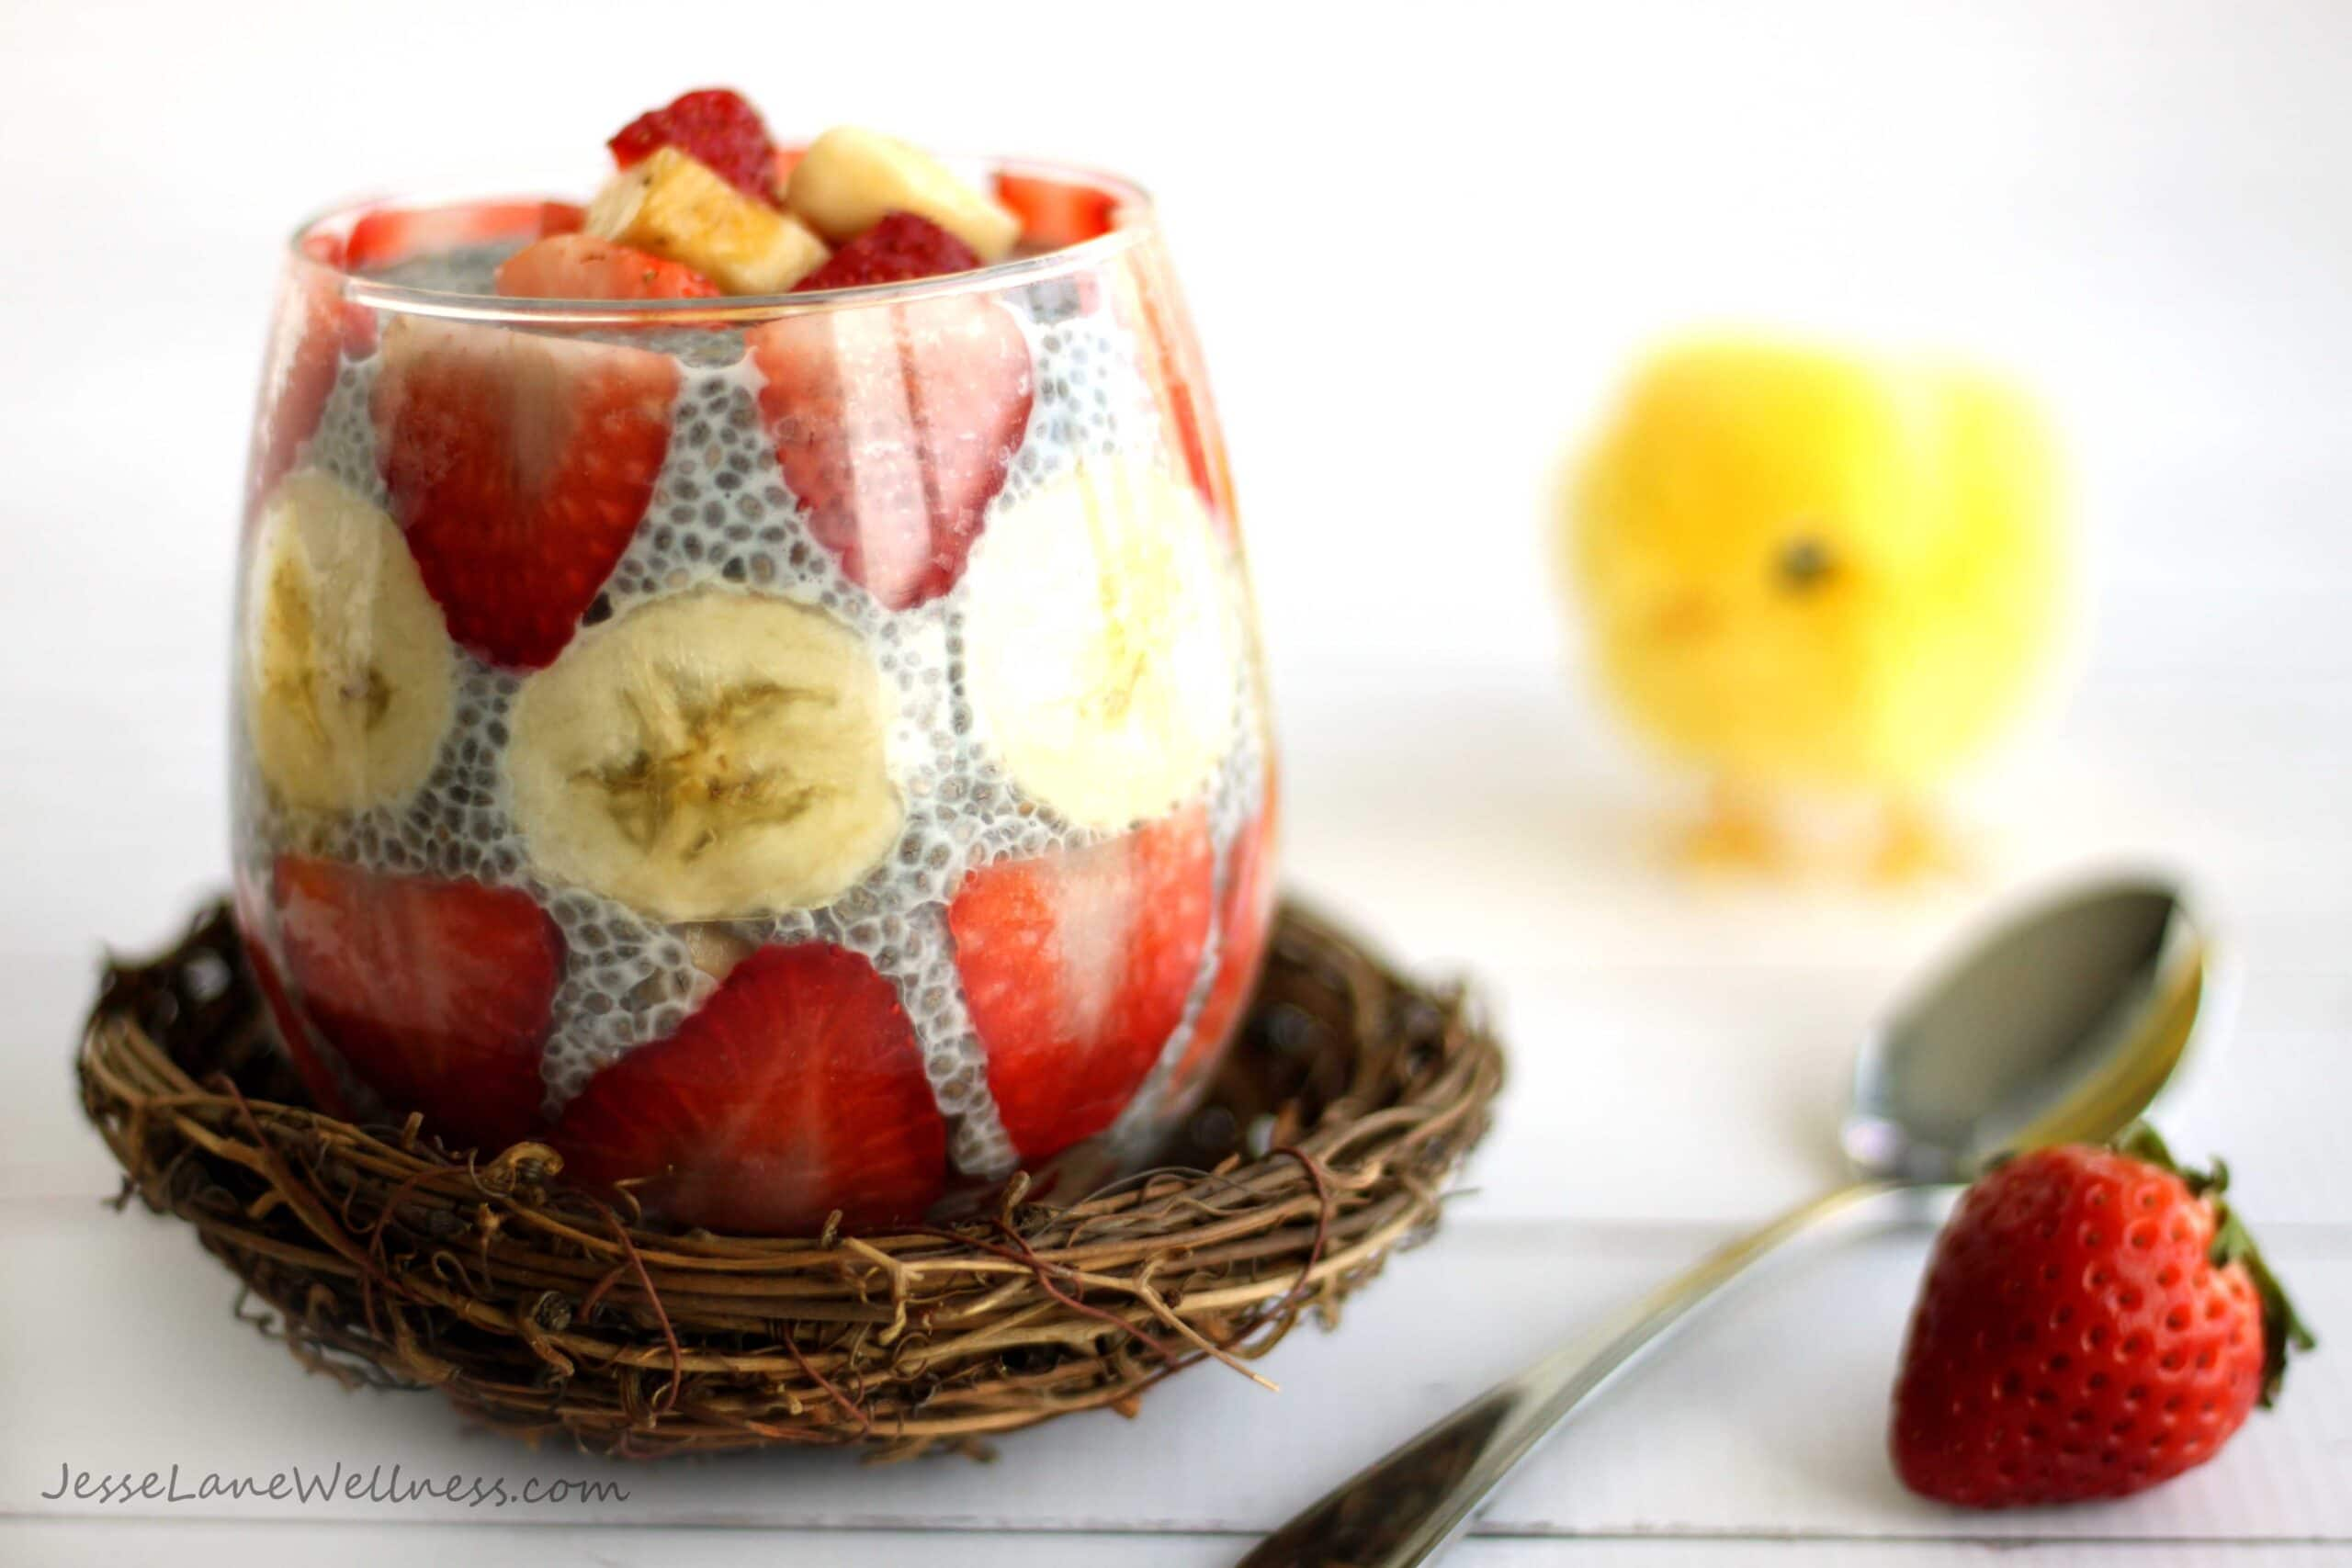 Strawberry Banana Chia Pudding by @jesselwellness #chiapudding #easter